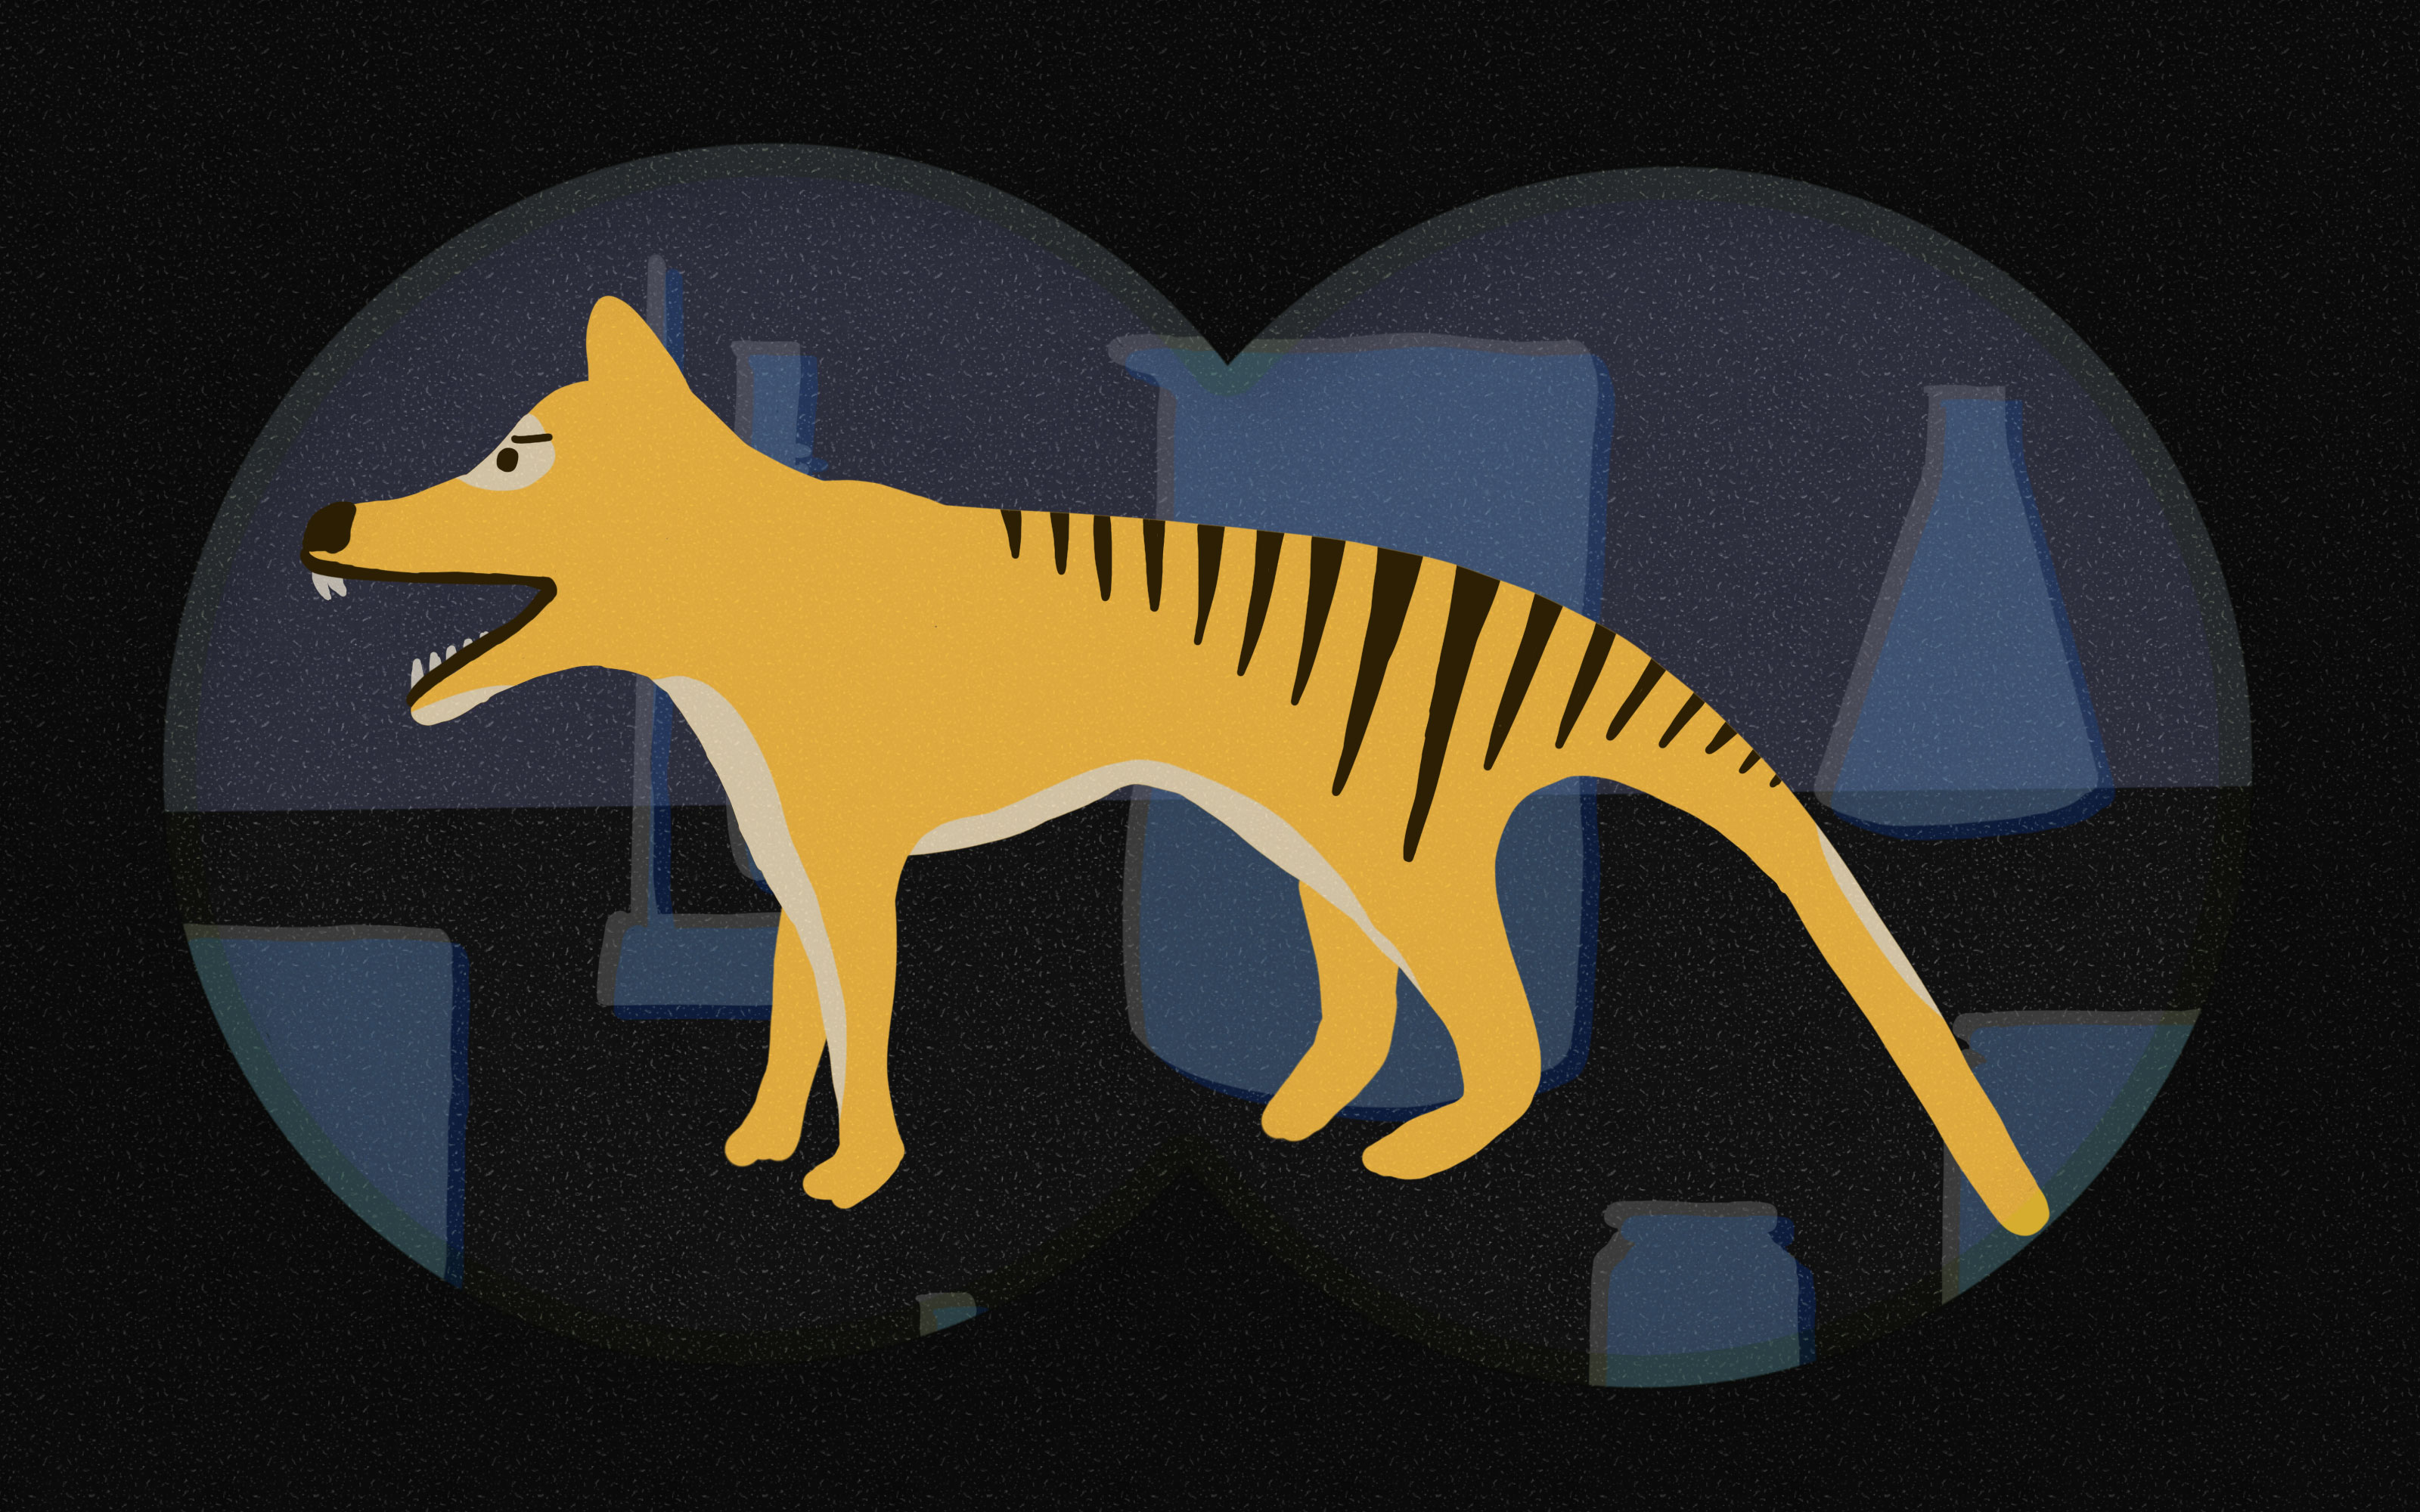 Illustration of the thylacine, surrounded by laboratory and preservation equipment, in the silhouette of binocular lenses